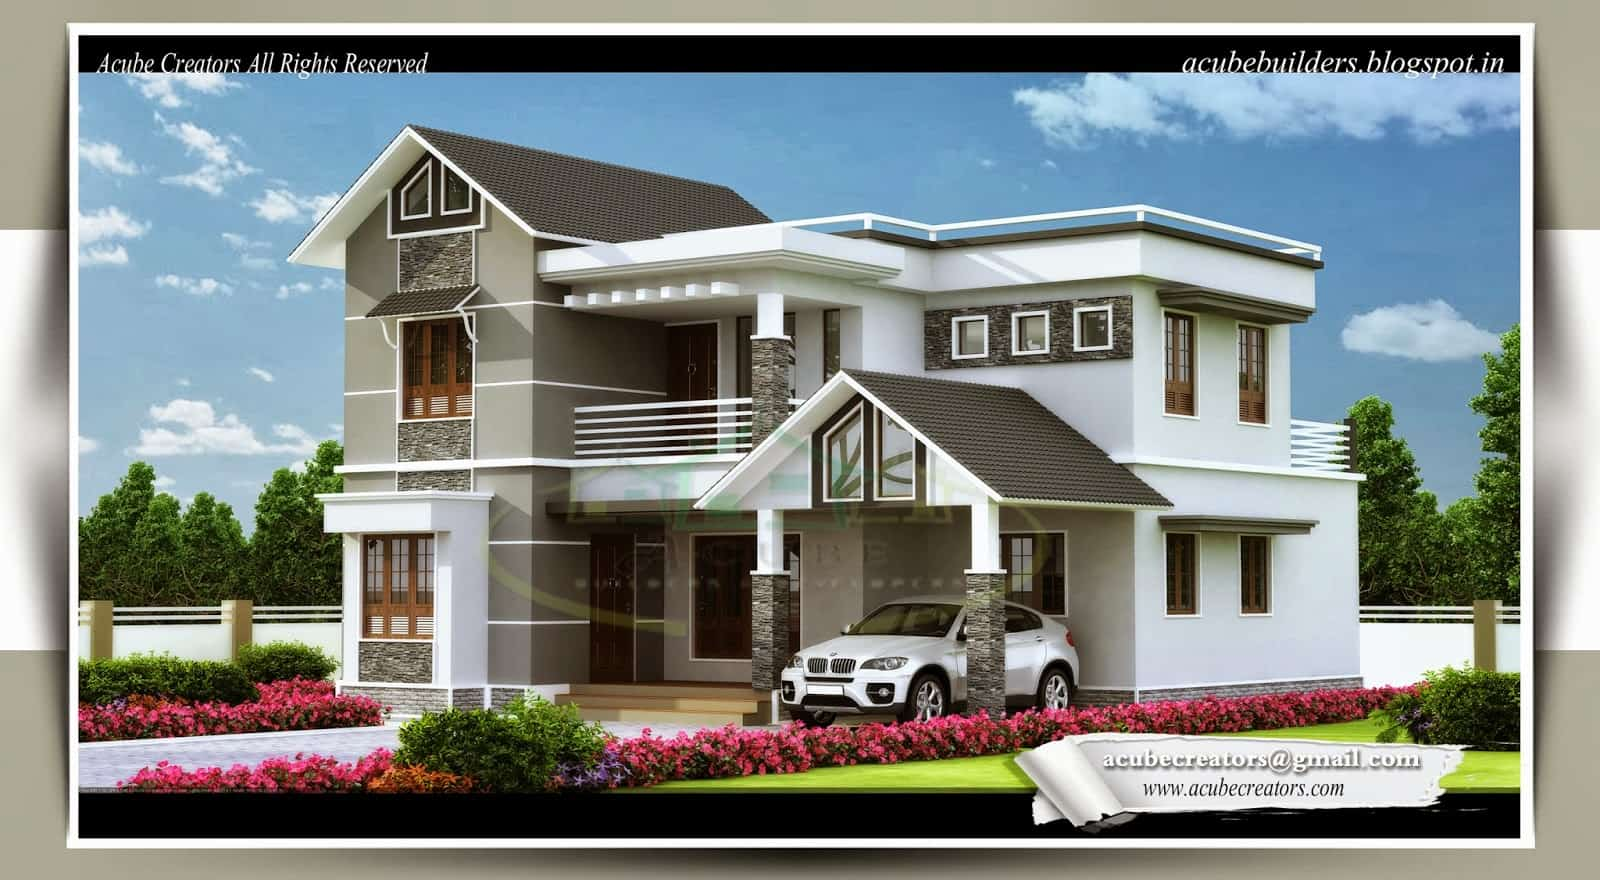 Kerala home design photos for Kerala home designs com